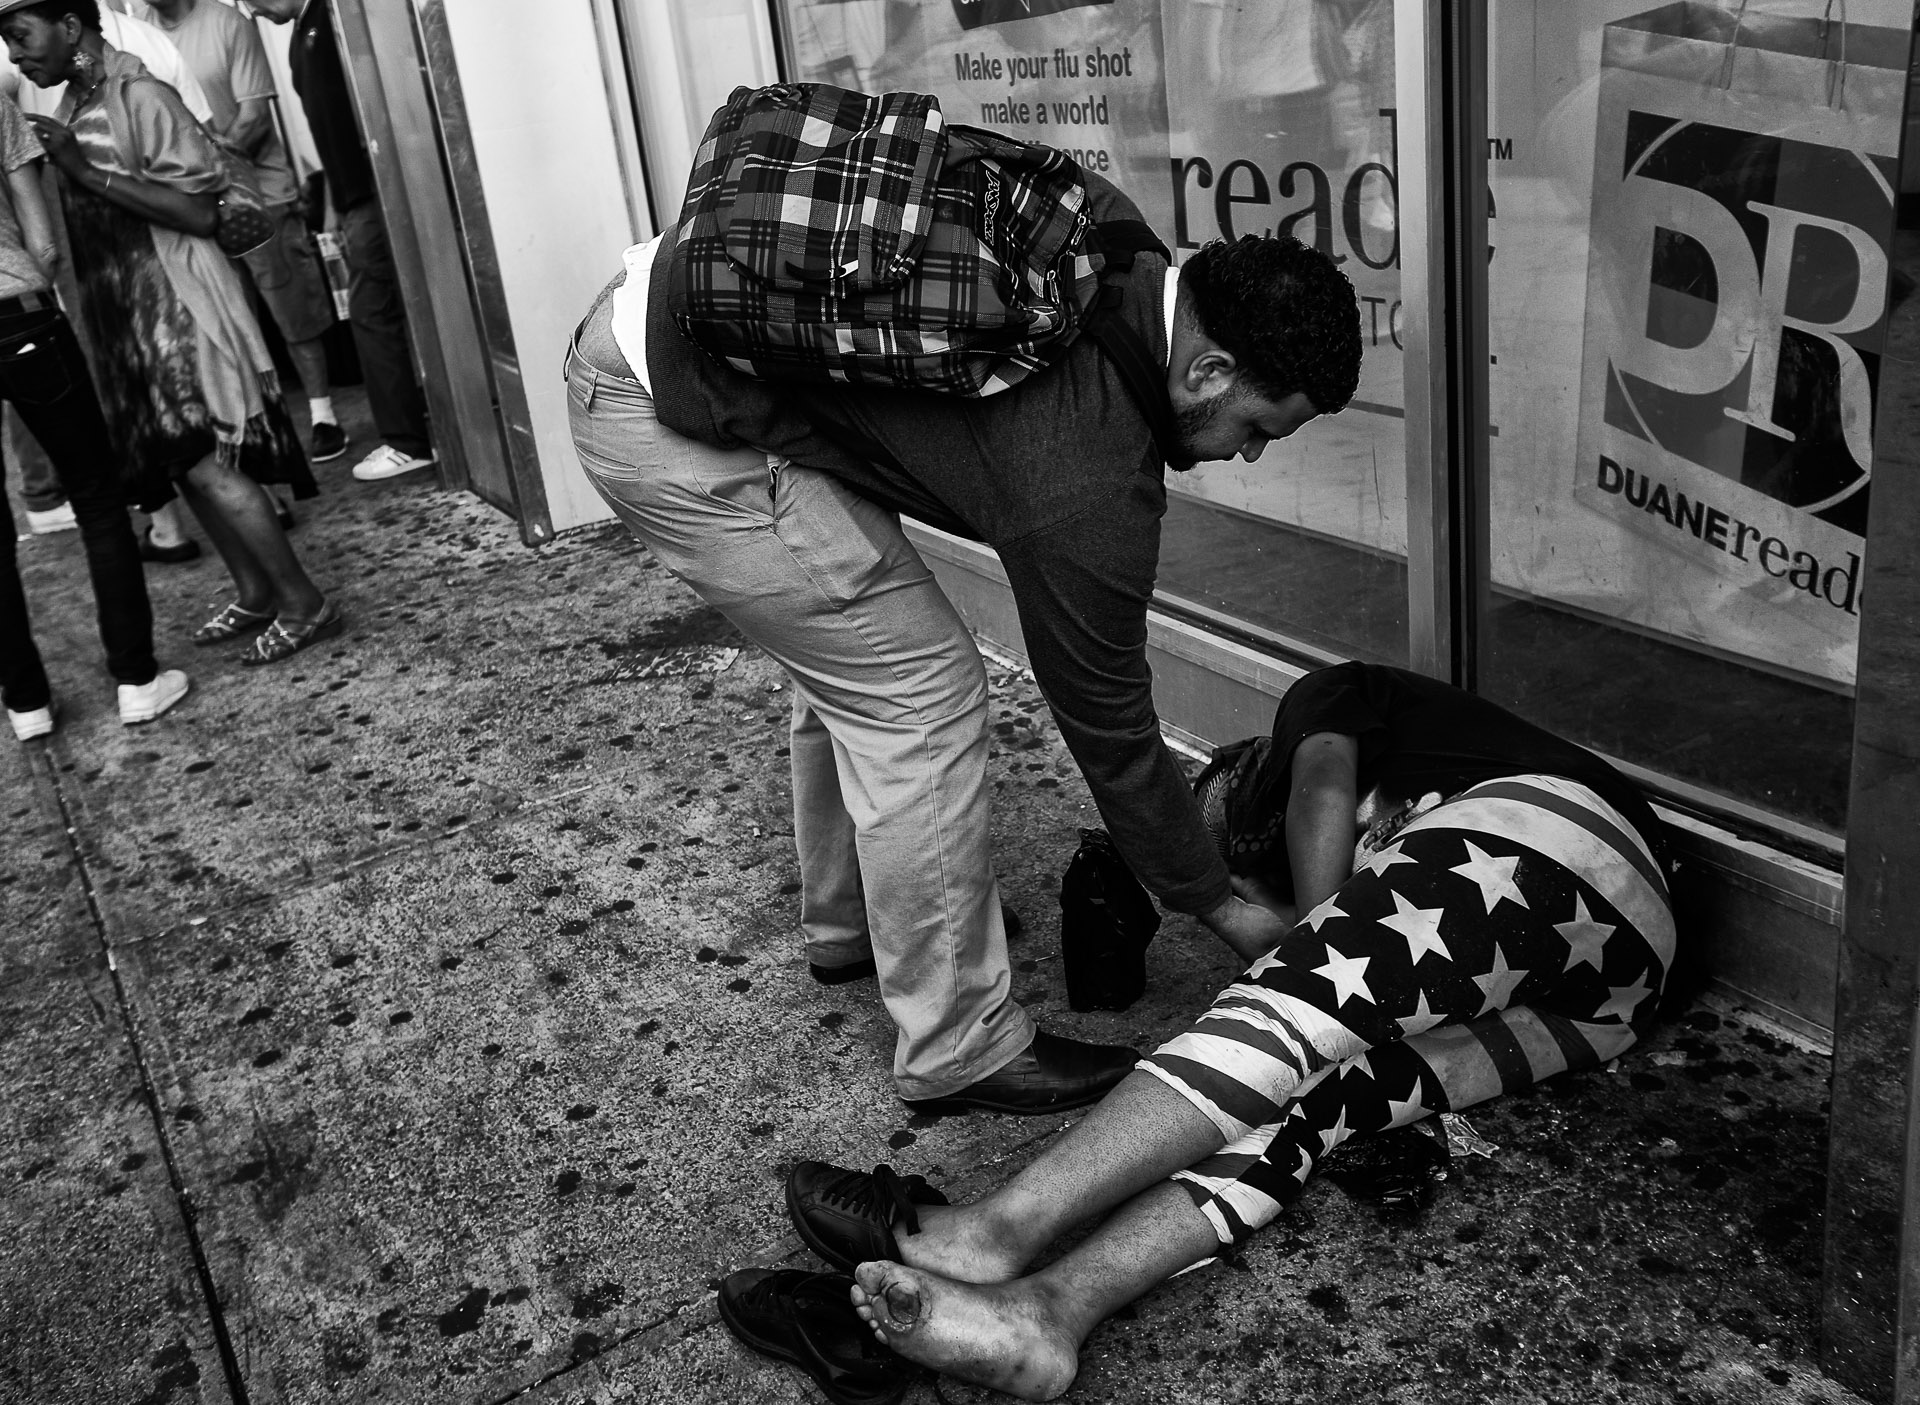 A pedestrian checks the pulse of a woman who passed out on the street in an area of East Harlem that has experienced a surge in the use of synthetic marijuana, on Friday, September 18, 2015 in New York, N.Y.